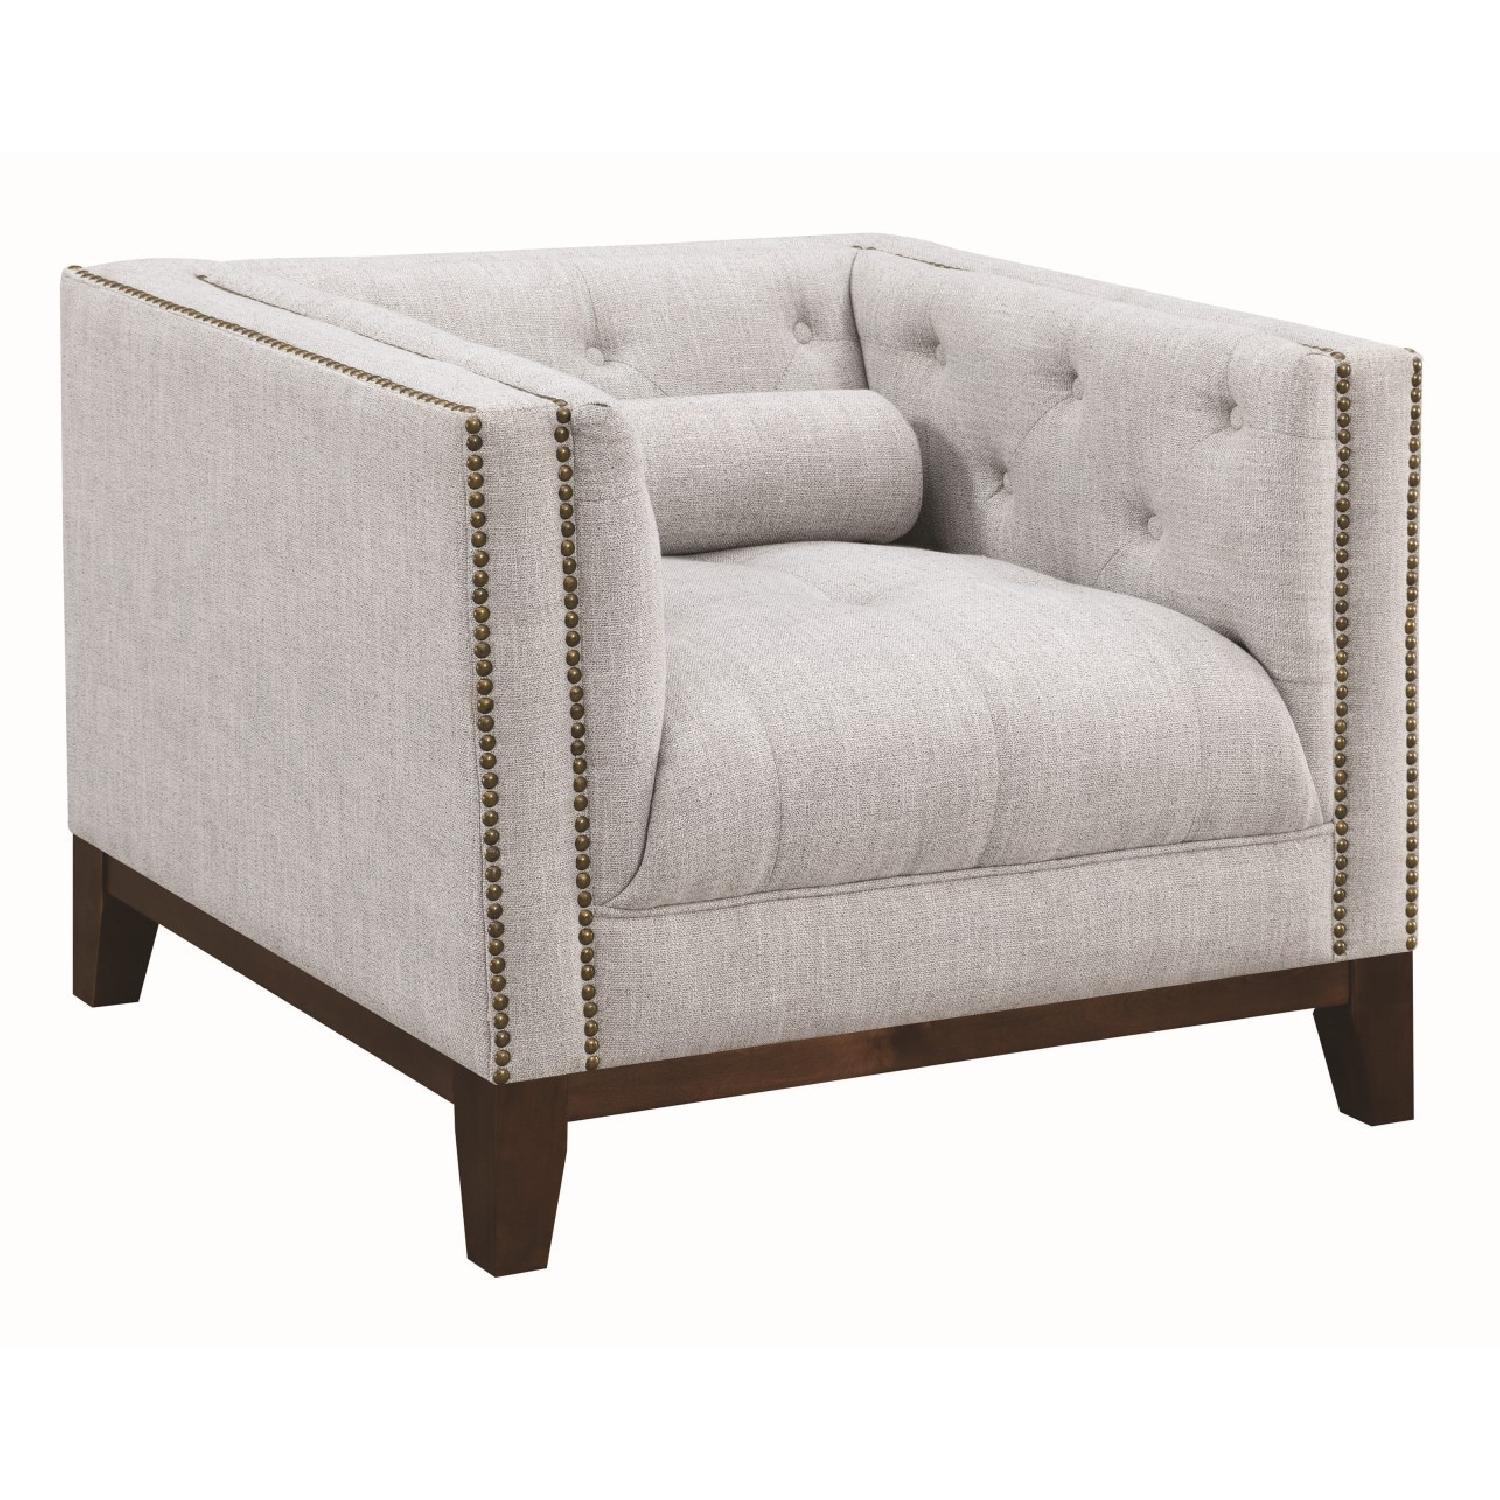 Modern Style Armchair w/ Tufted Buttons & Nailhead Accent - image-0